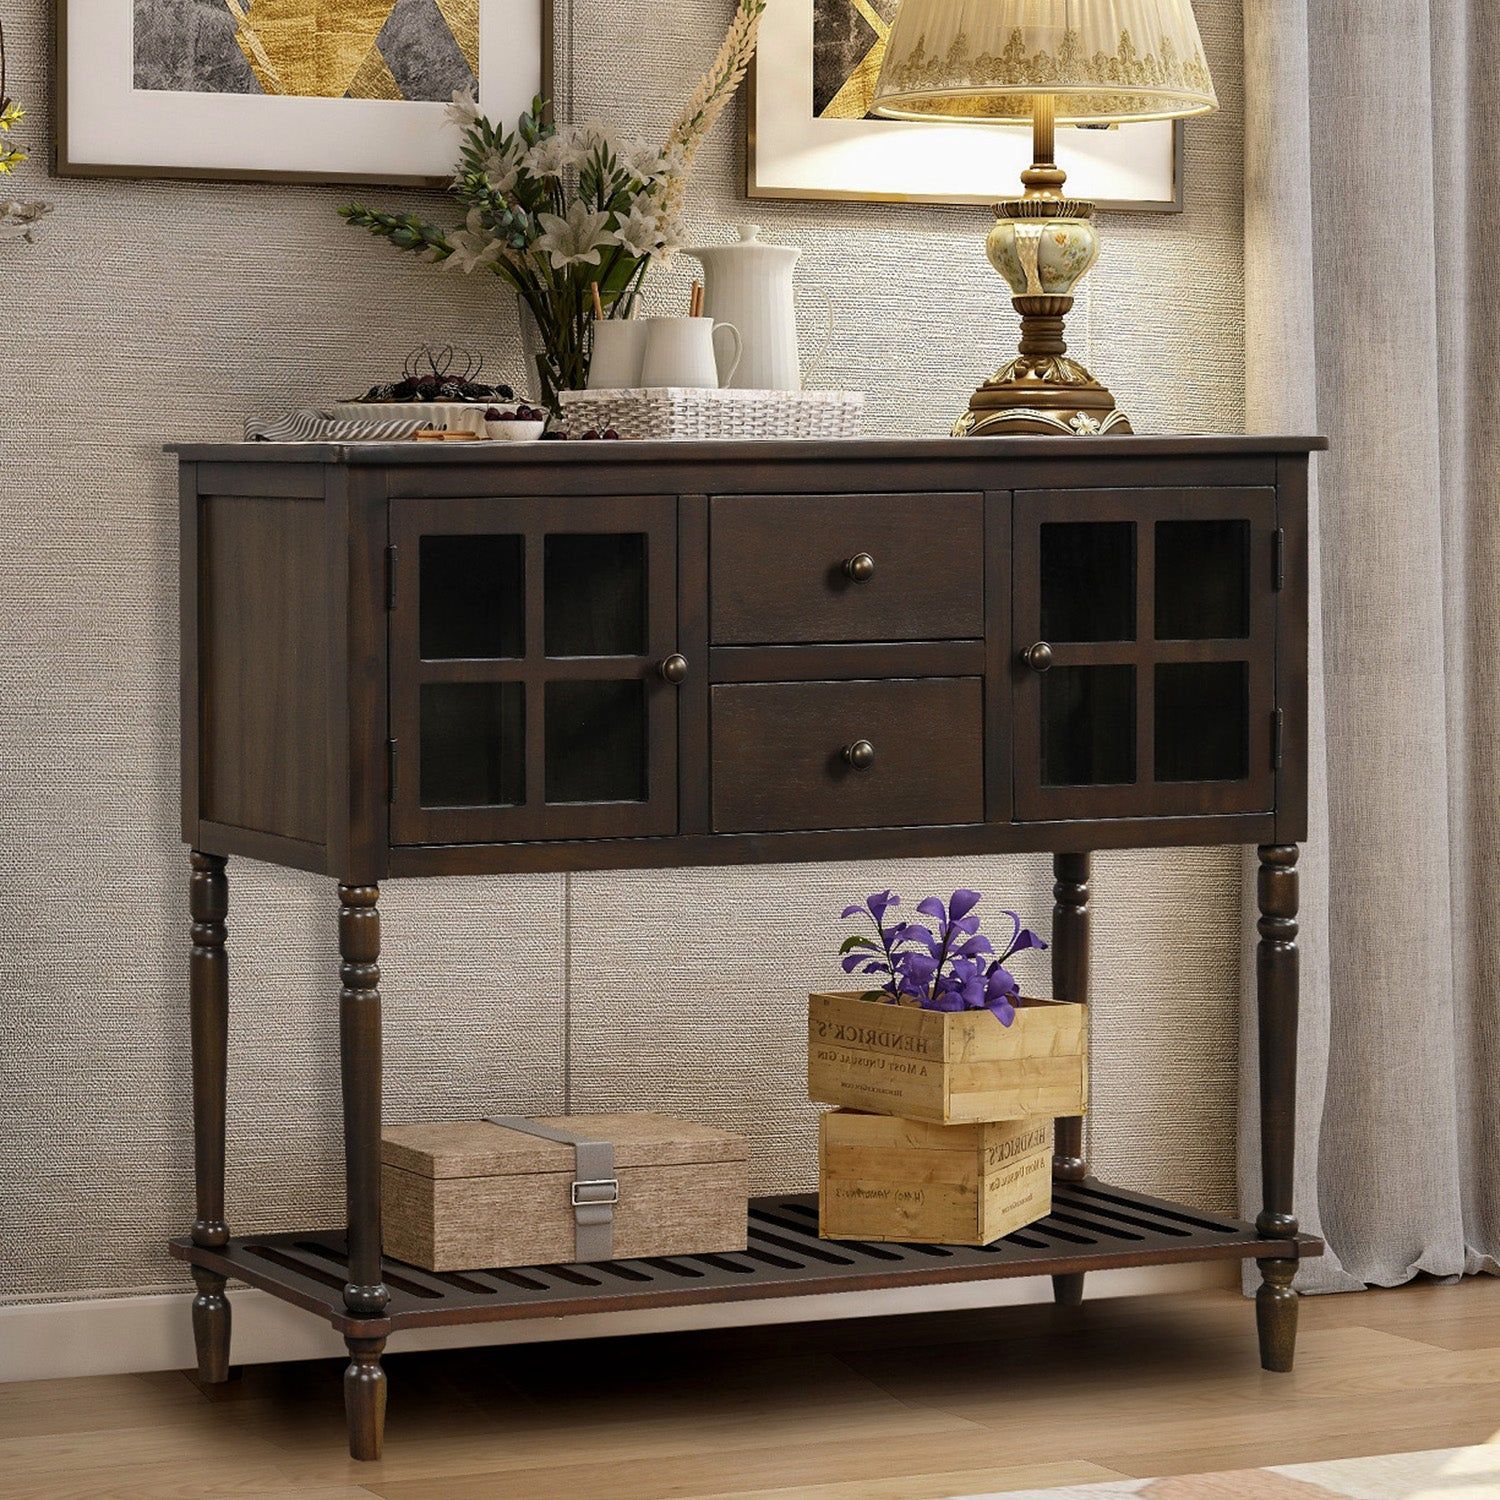 Dark Slate Gray Sideboard Console Table with Bottom Shelf, Farmhouse Wood/Glass Buffet Storage Cabinet Living Room BH193444